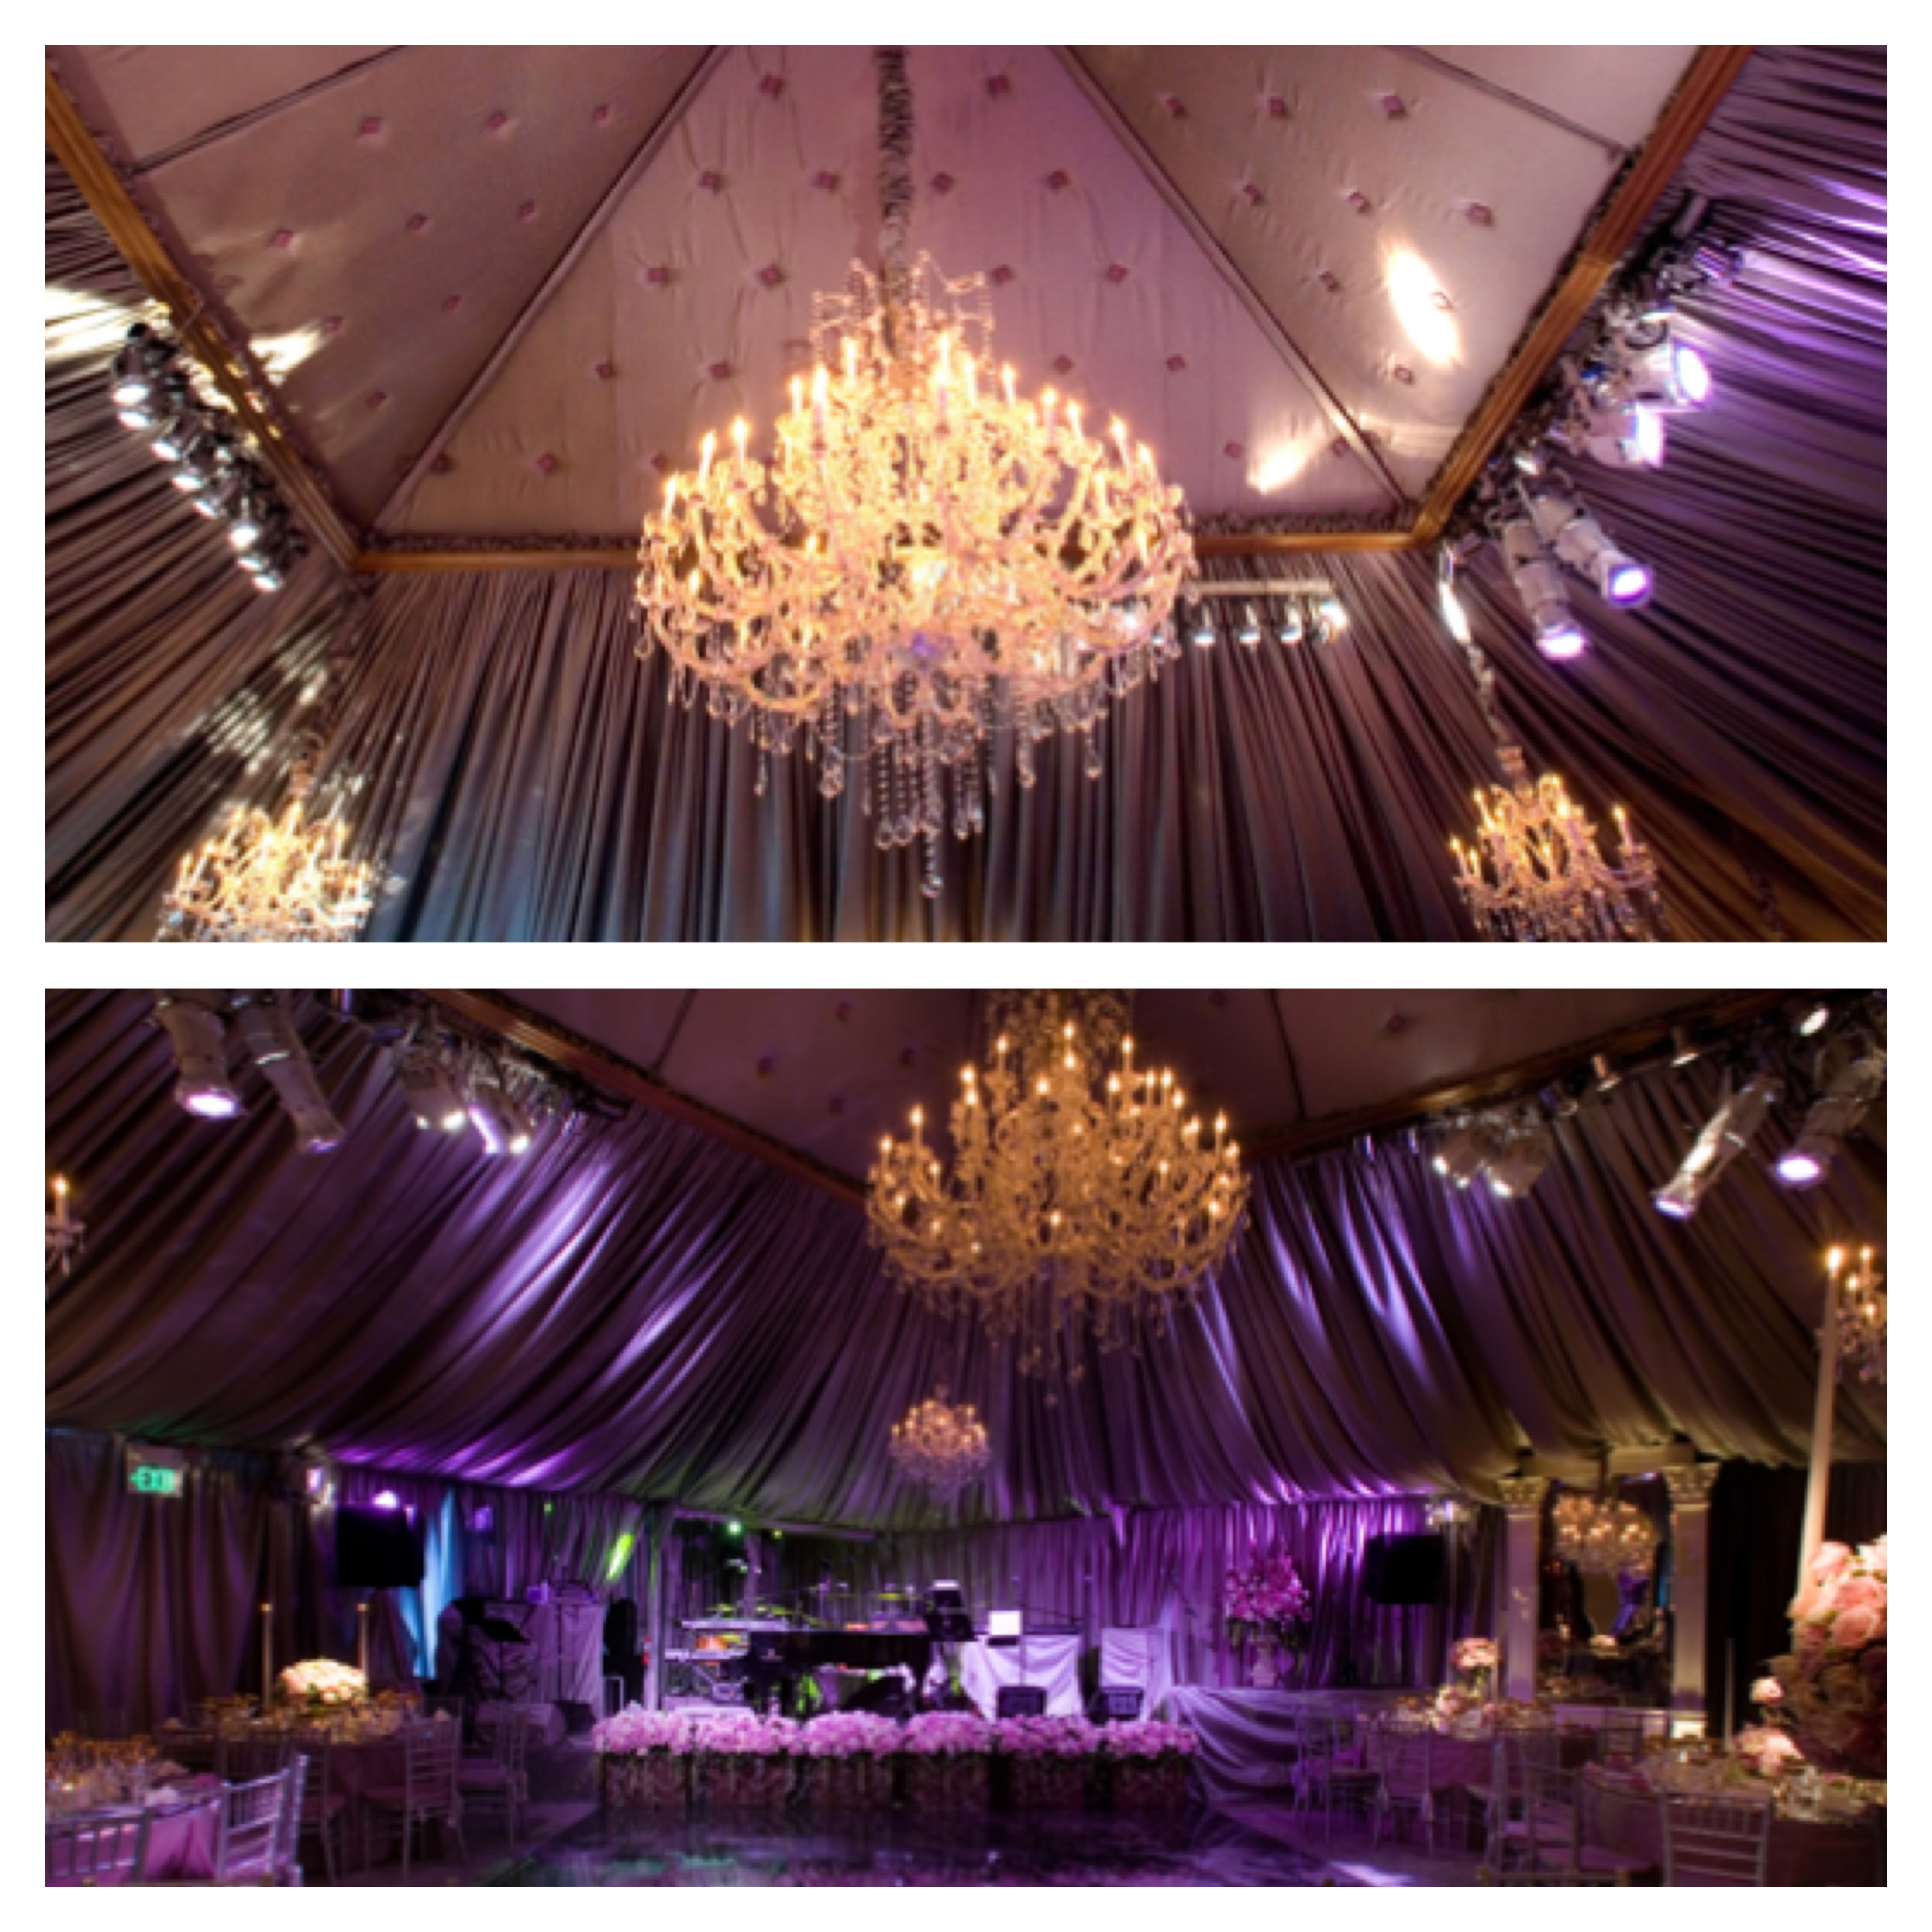 photo & Outdoor Weddings: Fabulous Tents | Save the Date Wedding u0026 Event ... azcodes.com